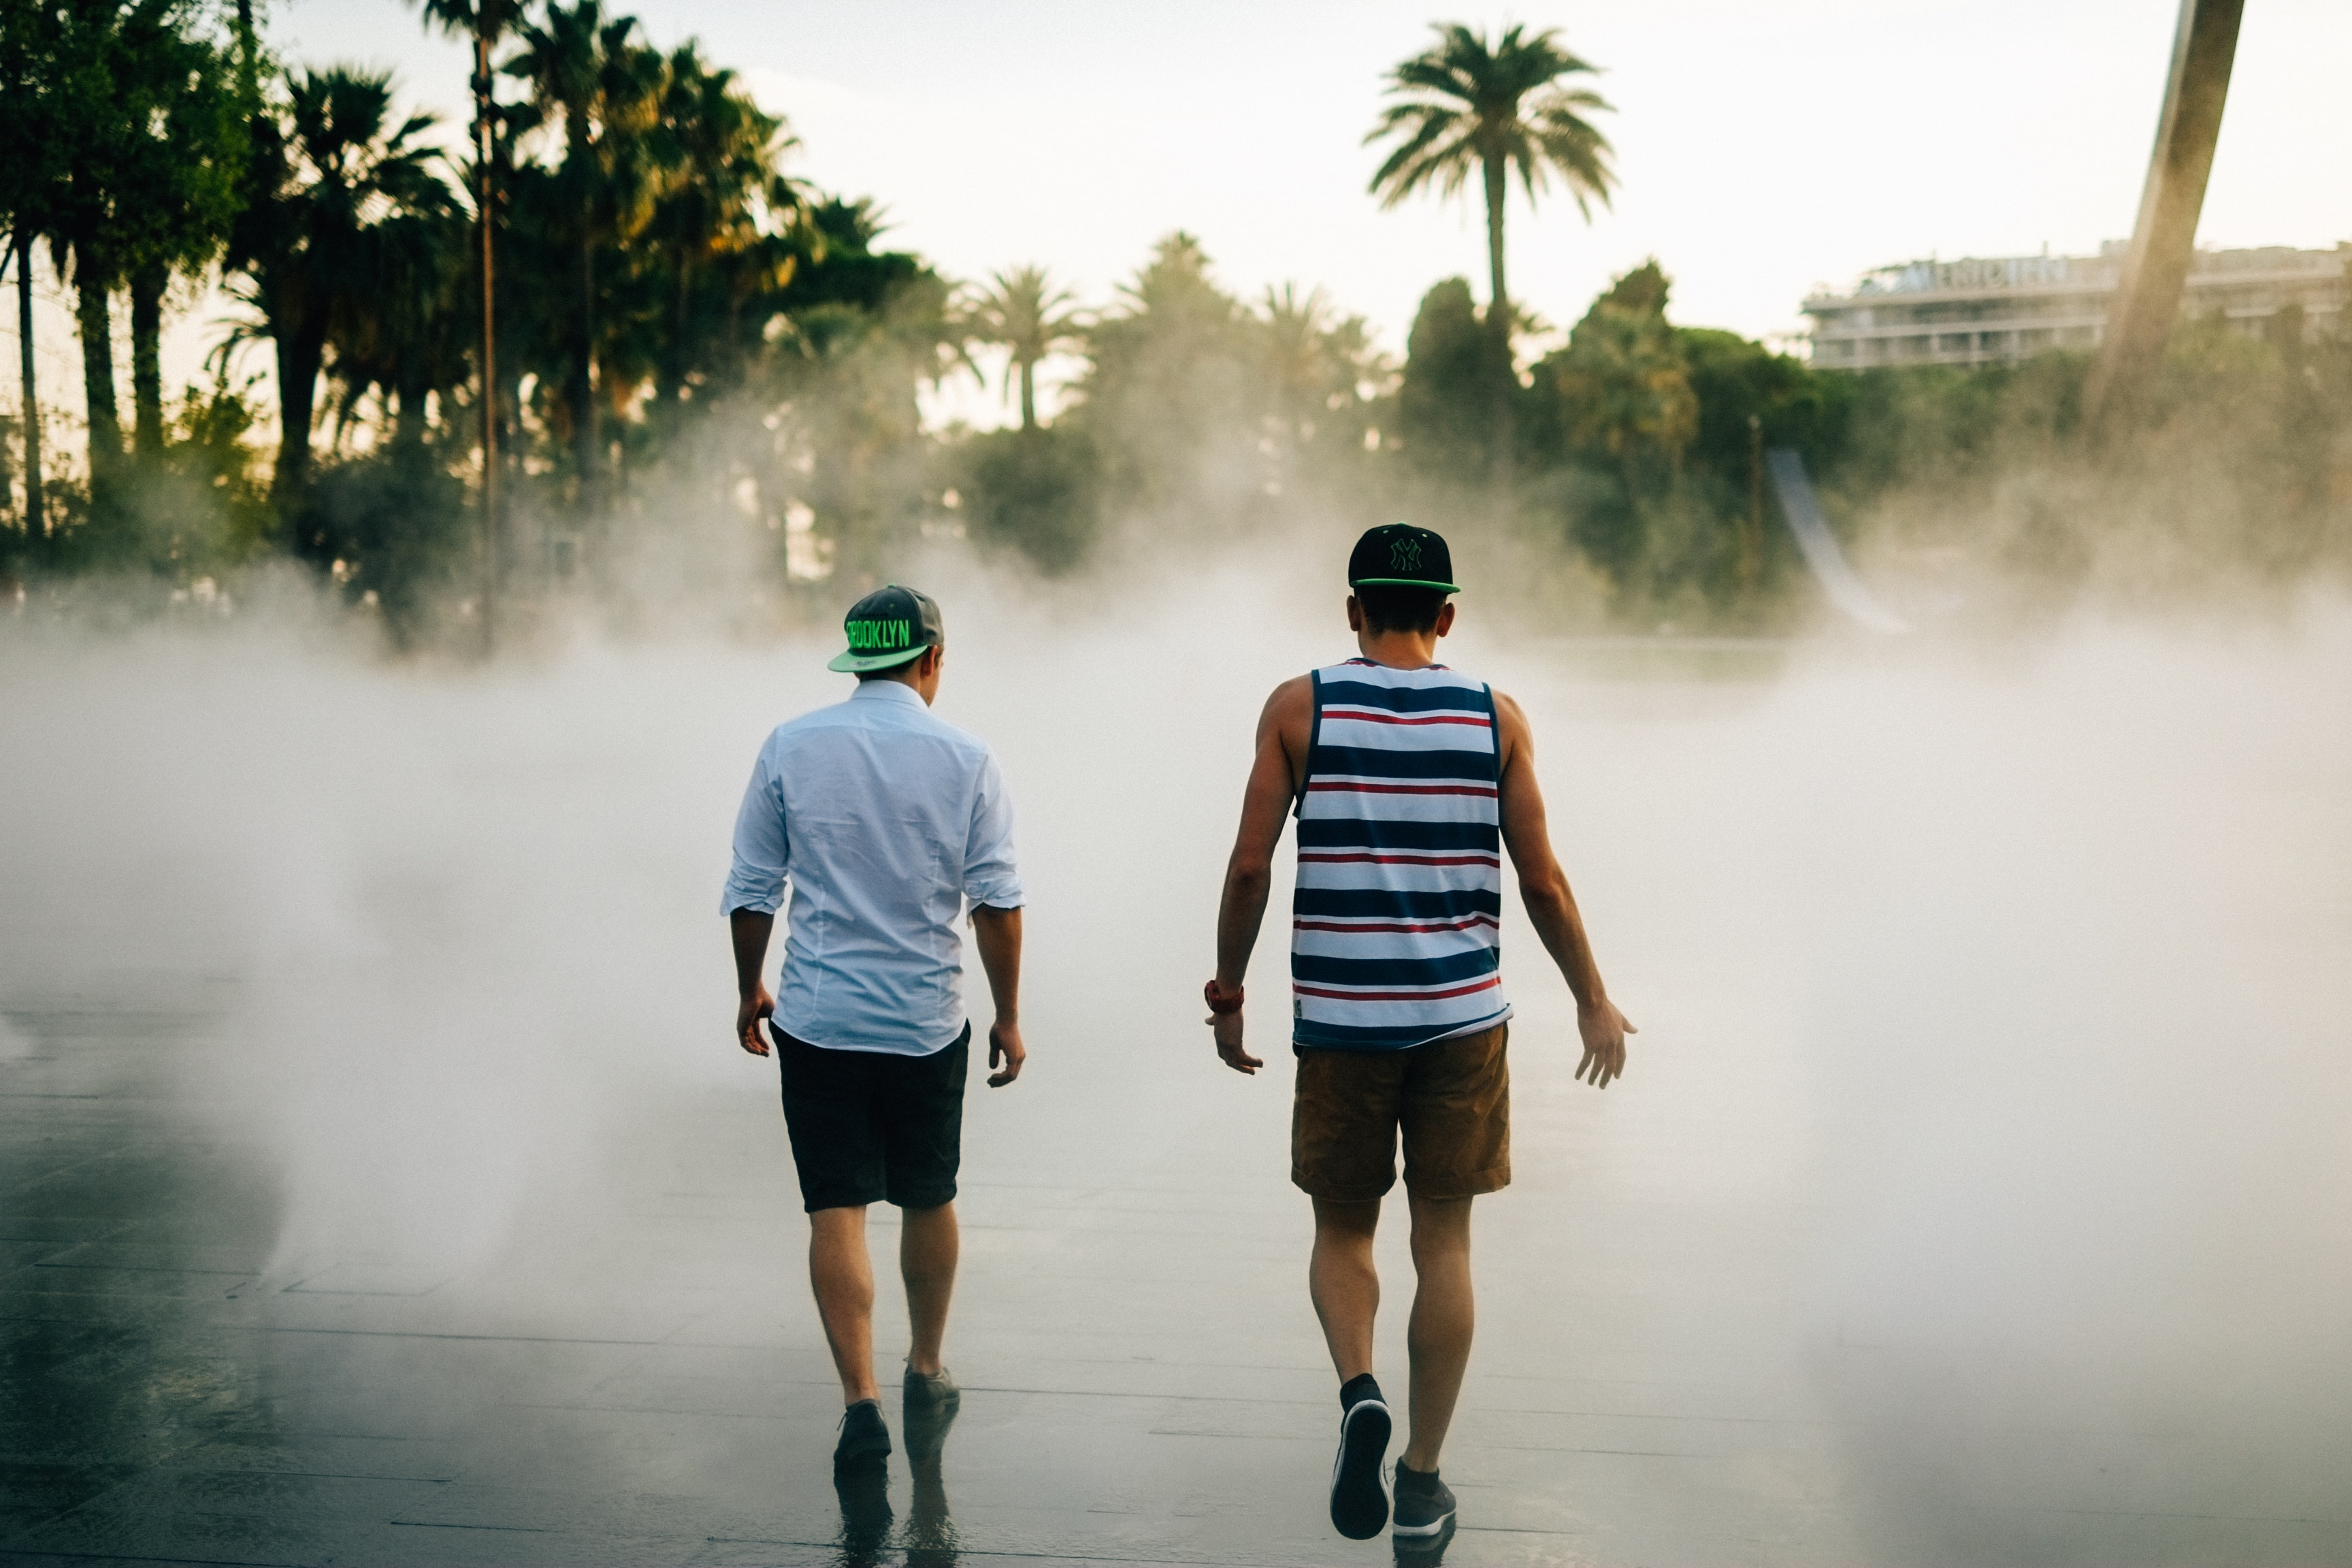 Young men walk through mist towards palm trees in the city